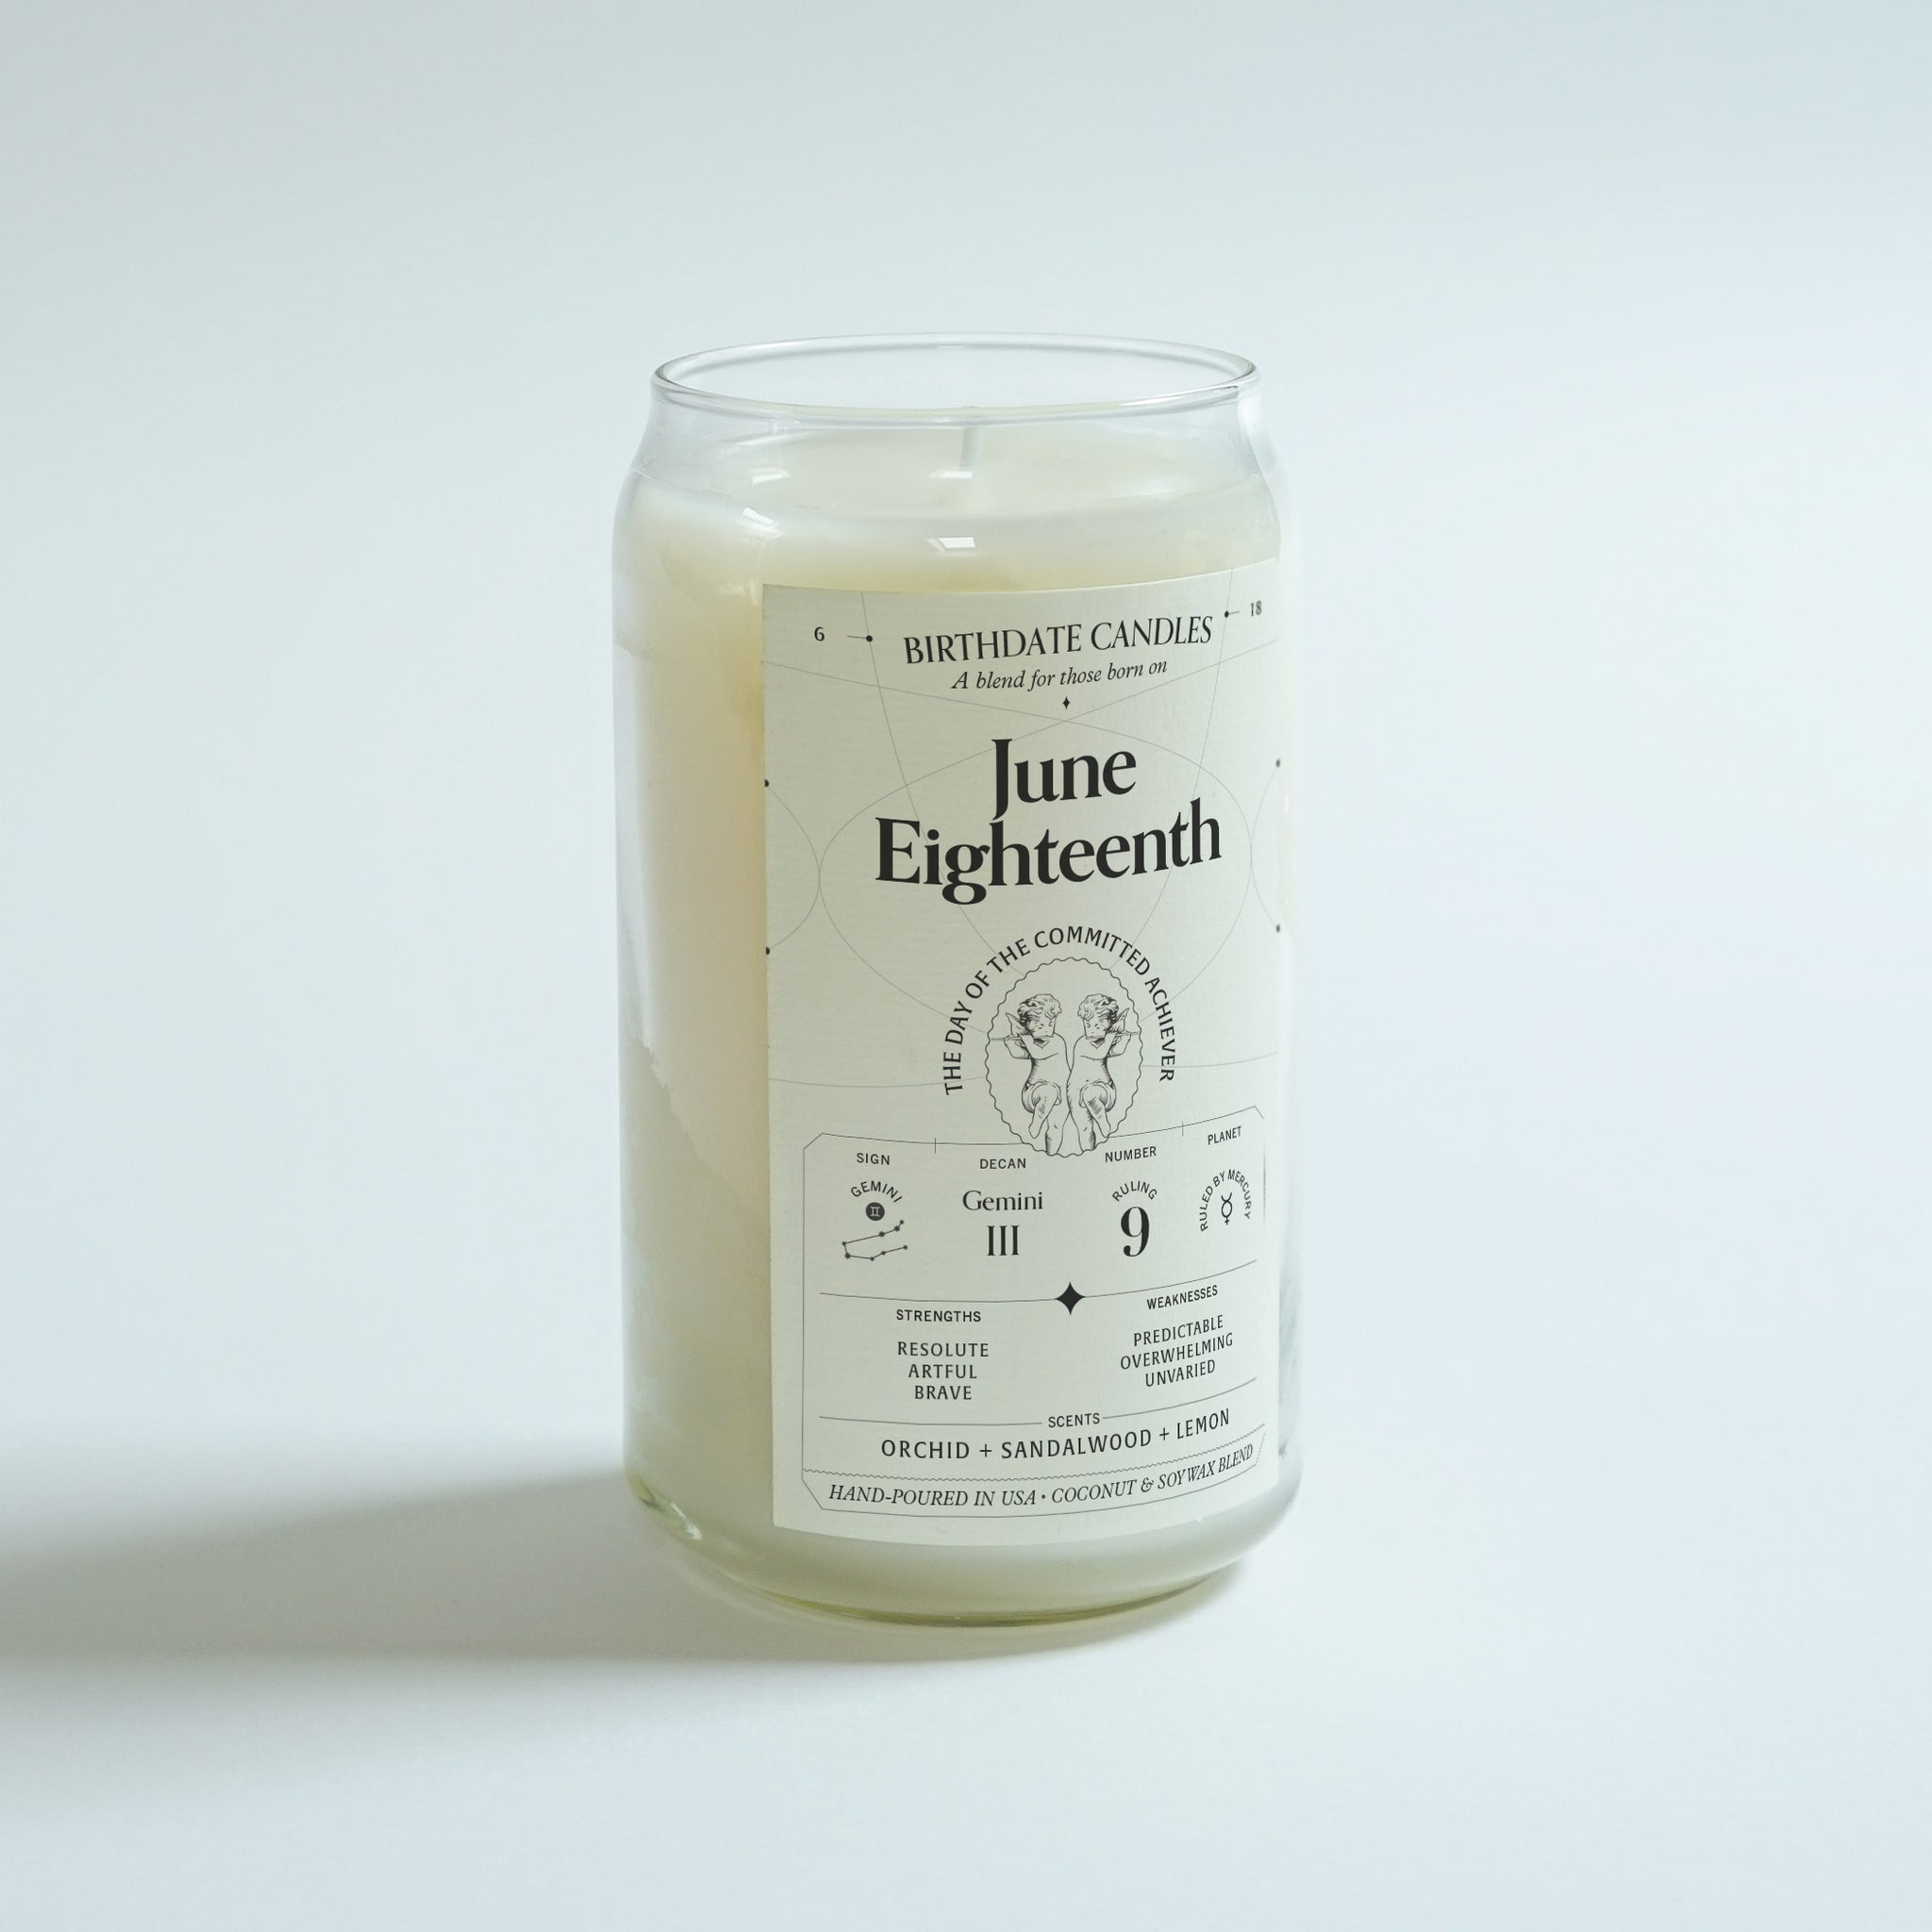 The June Eighteenth Candle